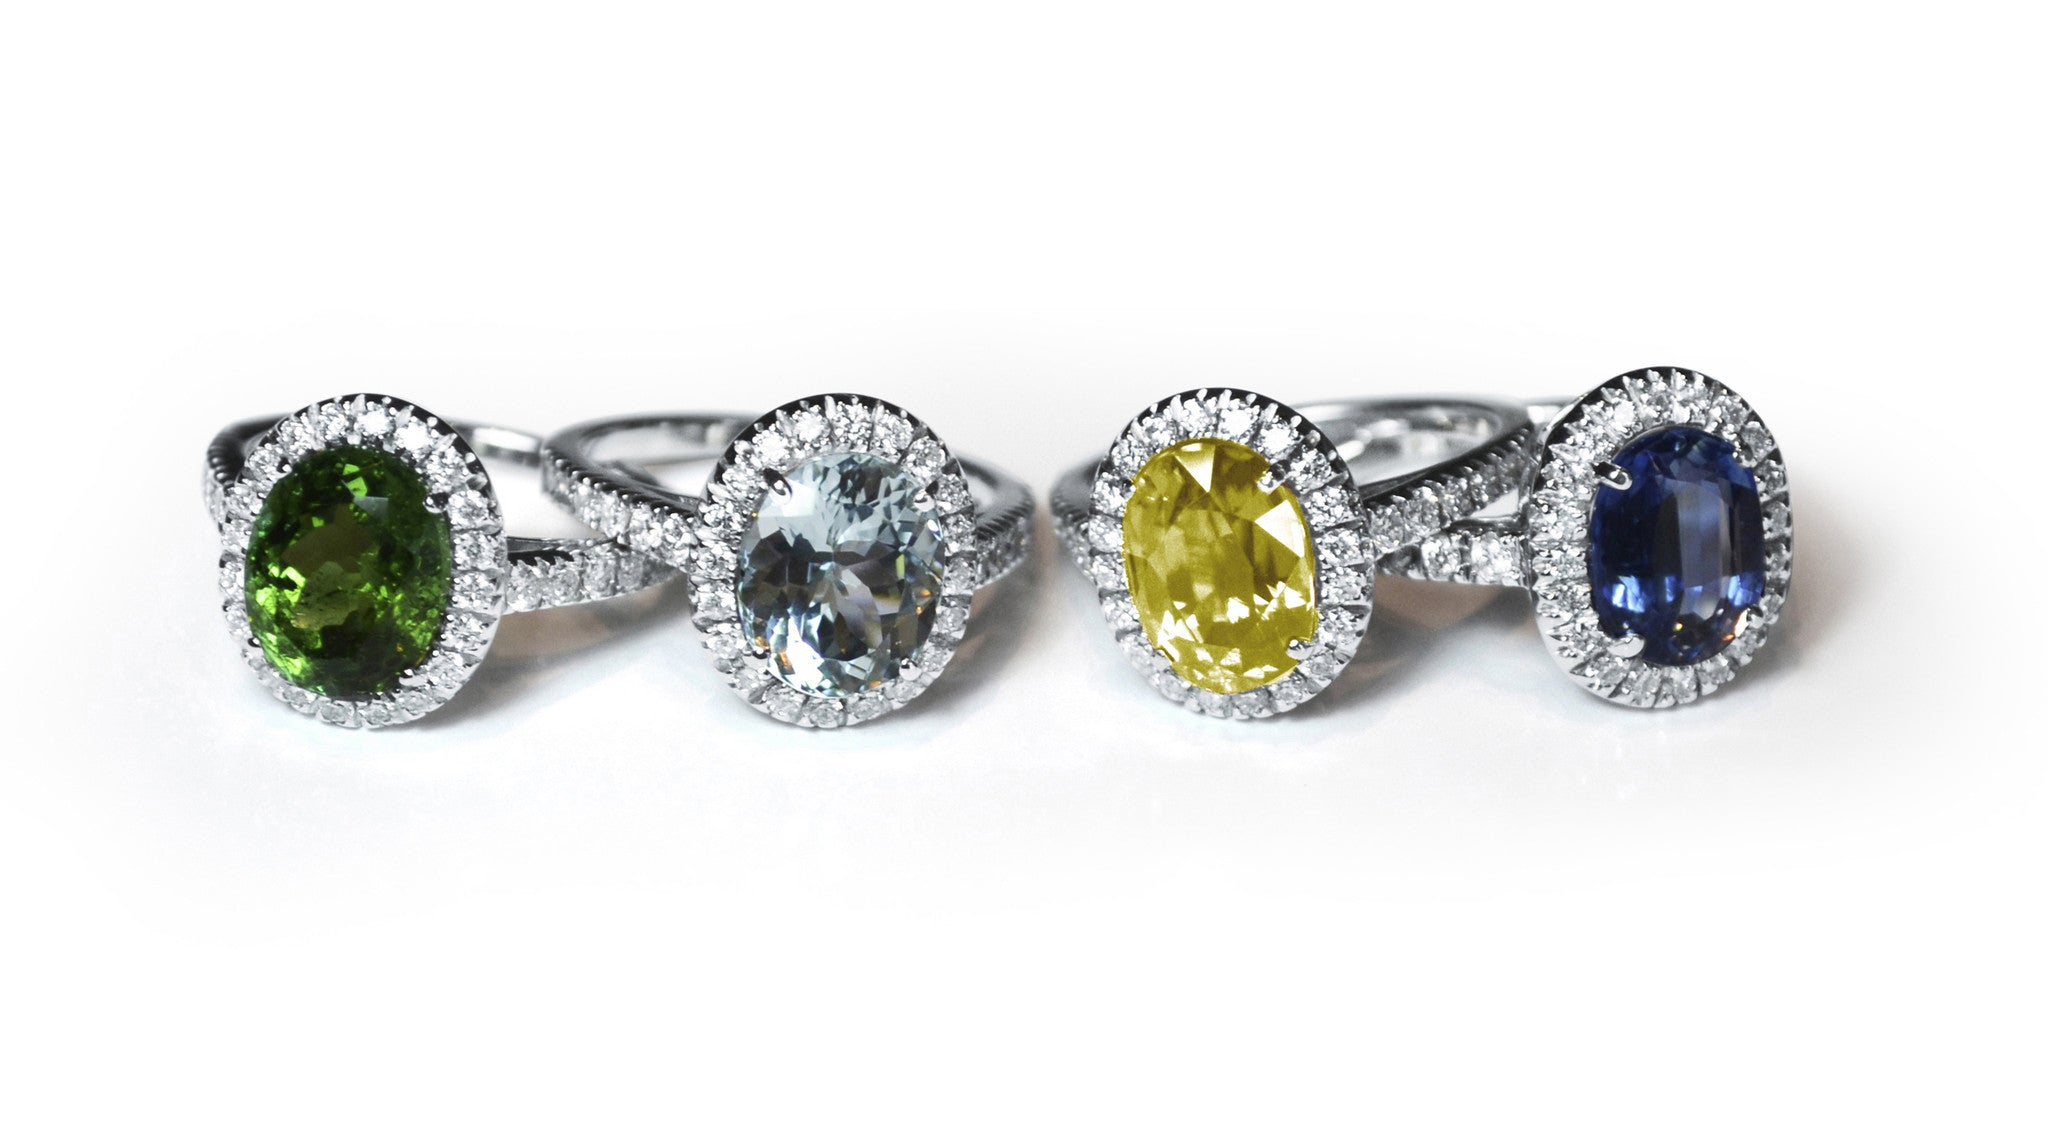 A-FURST-LES-MAGNIFIQUE-HALO-RINGS-GREEN-TORMALINE-AQUAMARINE-YELLOW-SAPPHIRE-KYANITE-DIAMONDS-WHITE-GOLD